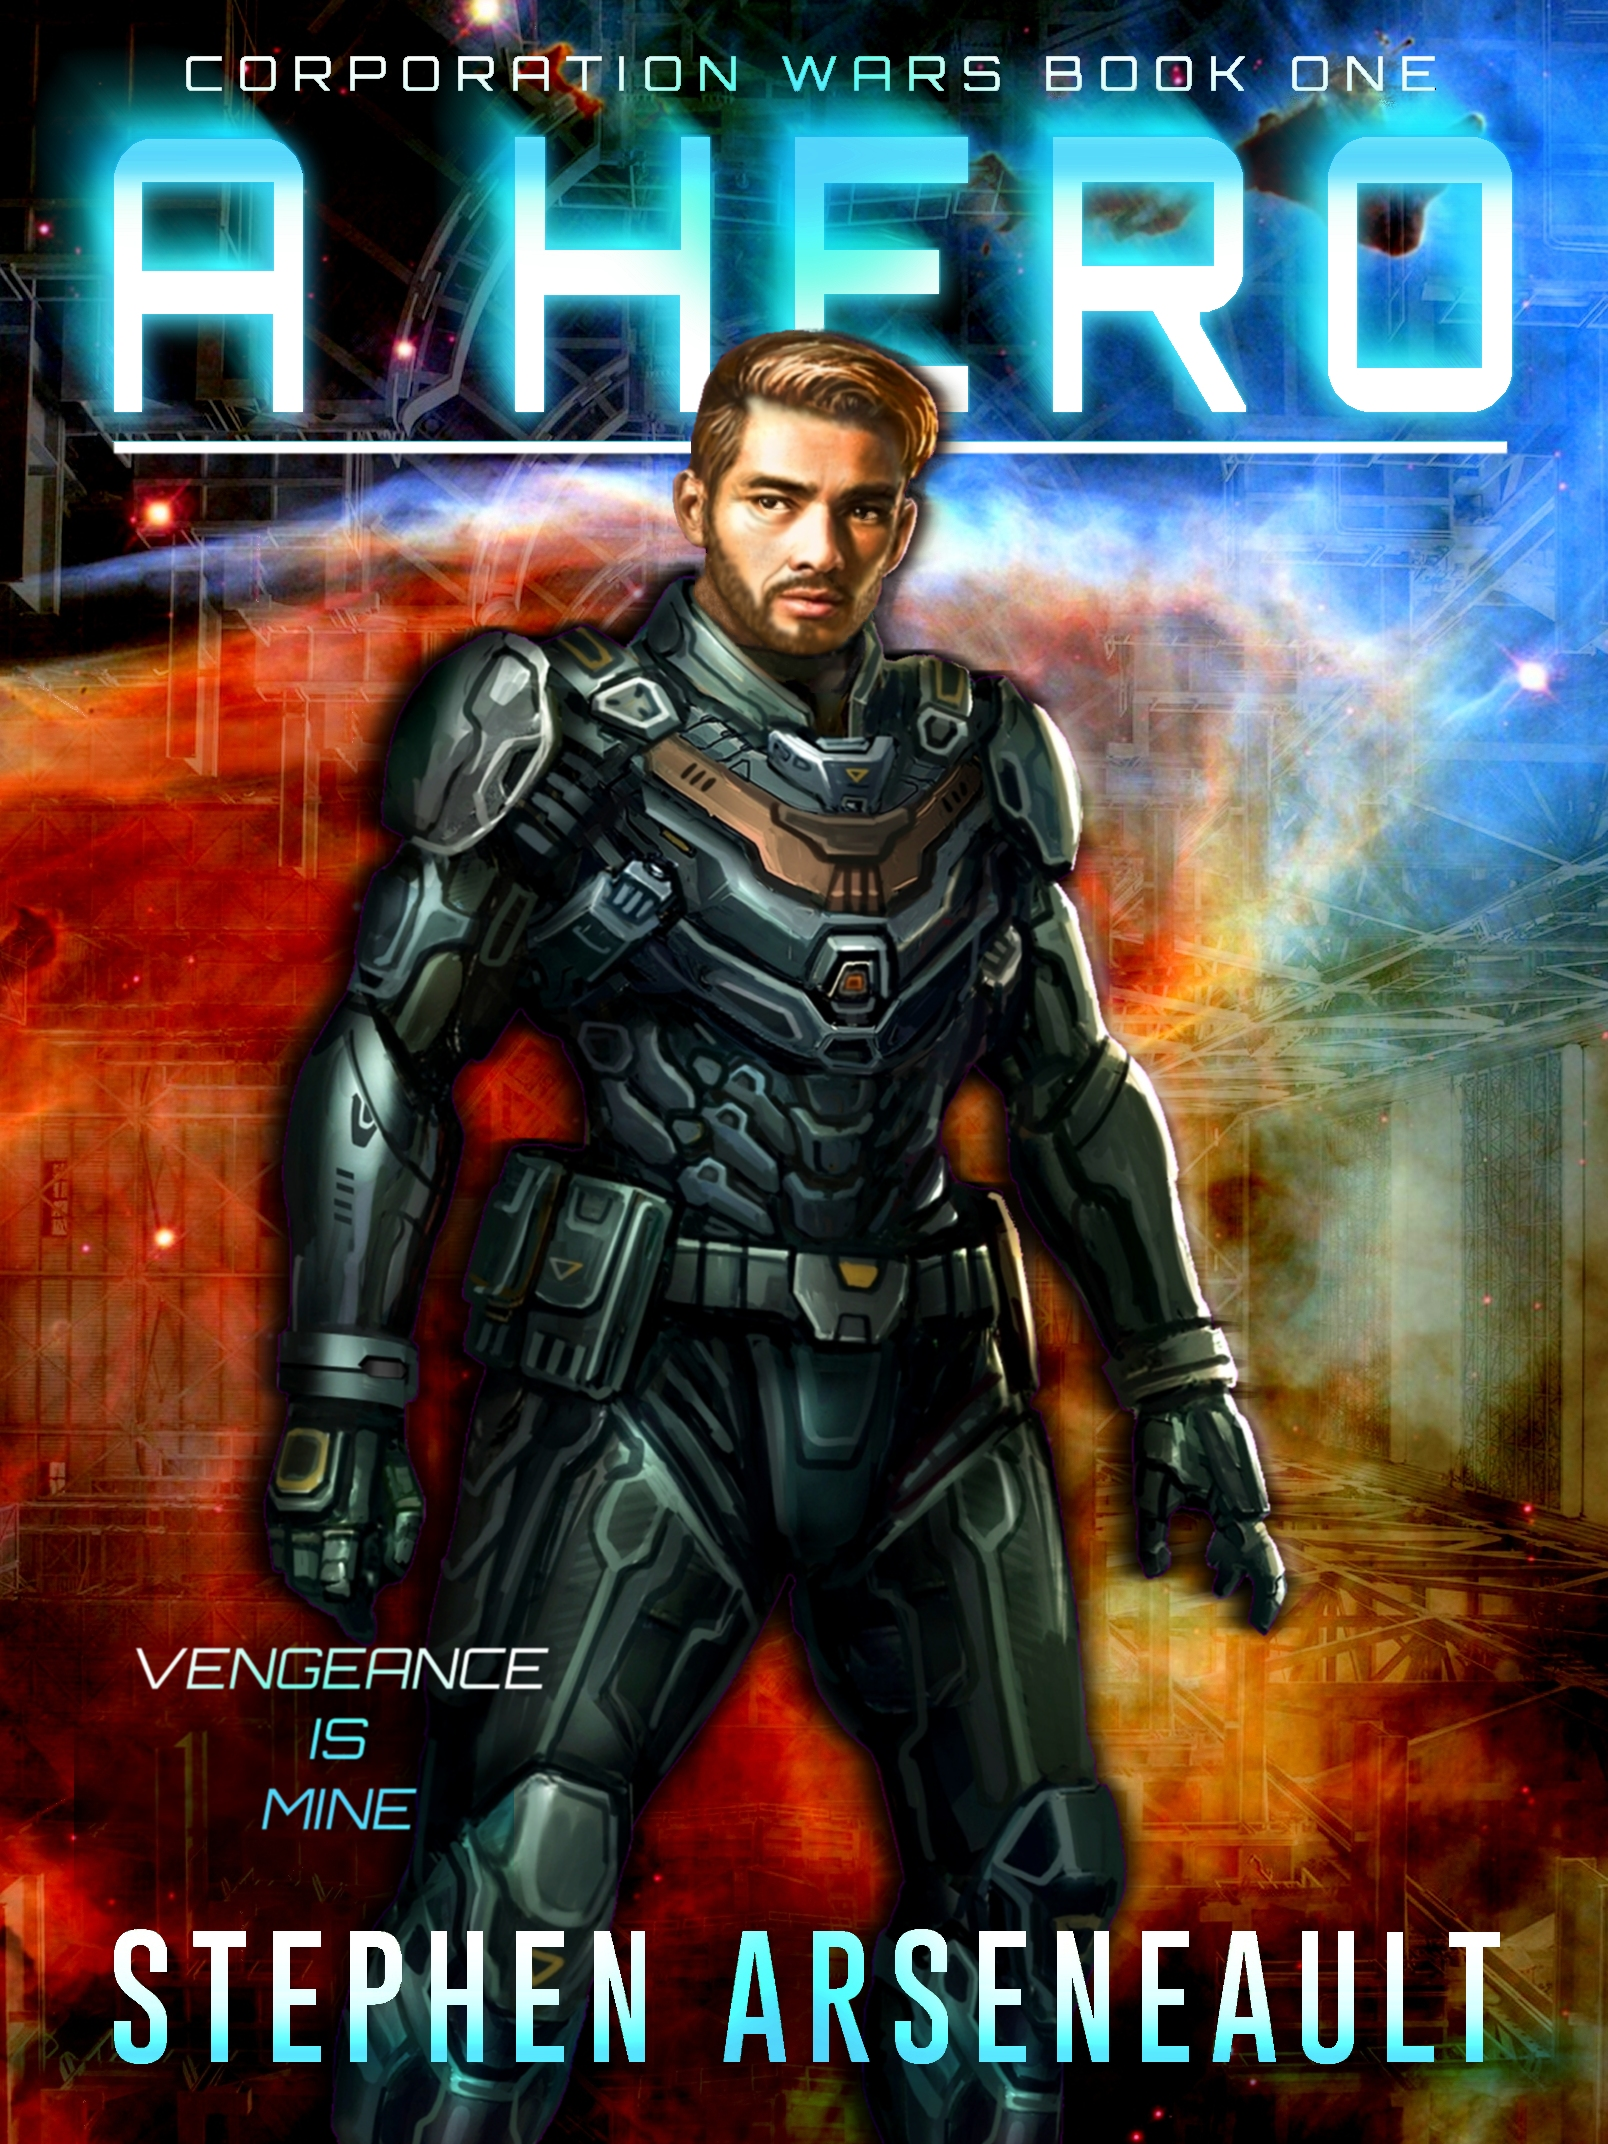 A Hero (CORPORATION WARS) Book 1(sst-cccxxxv)